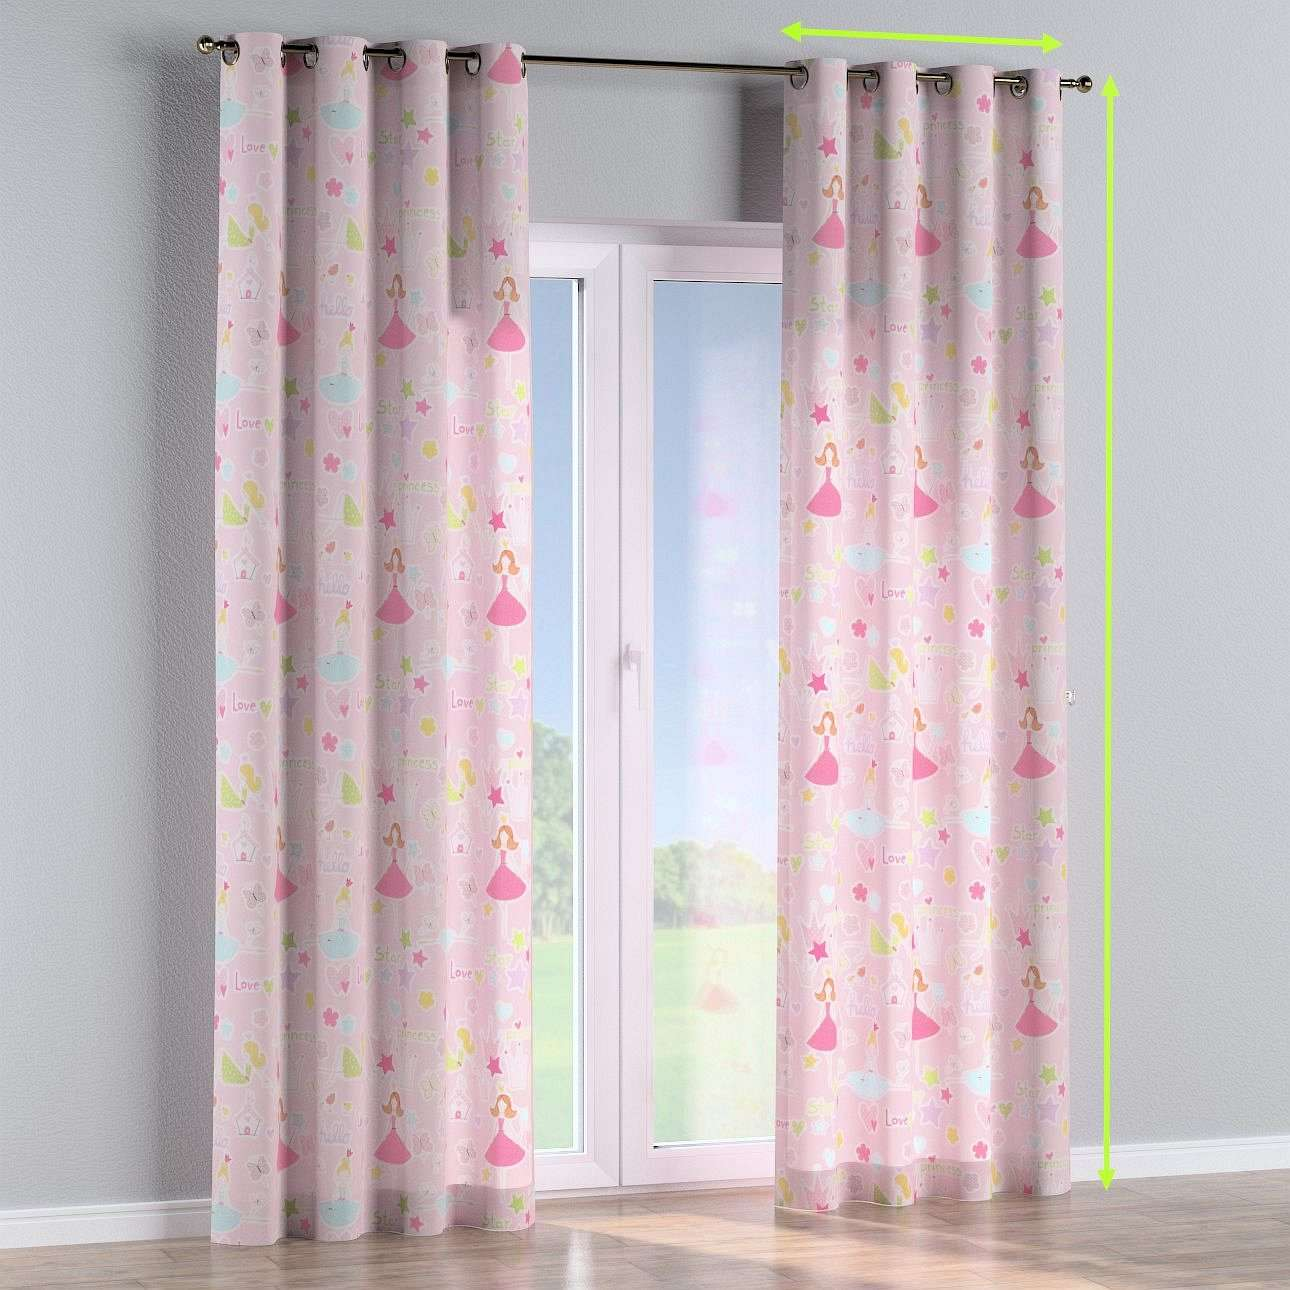 Eyelet curtains in collection Little World, fabric: 141-50